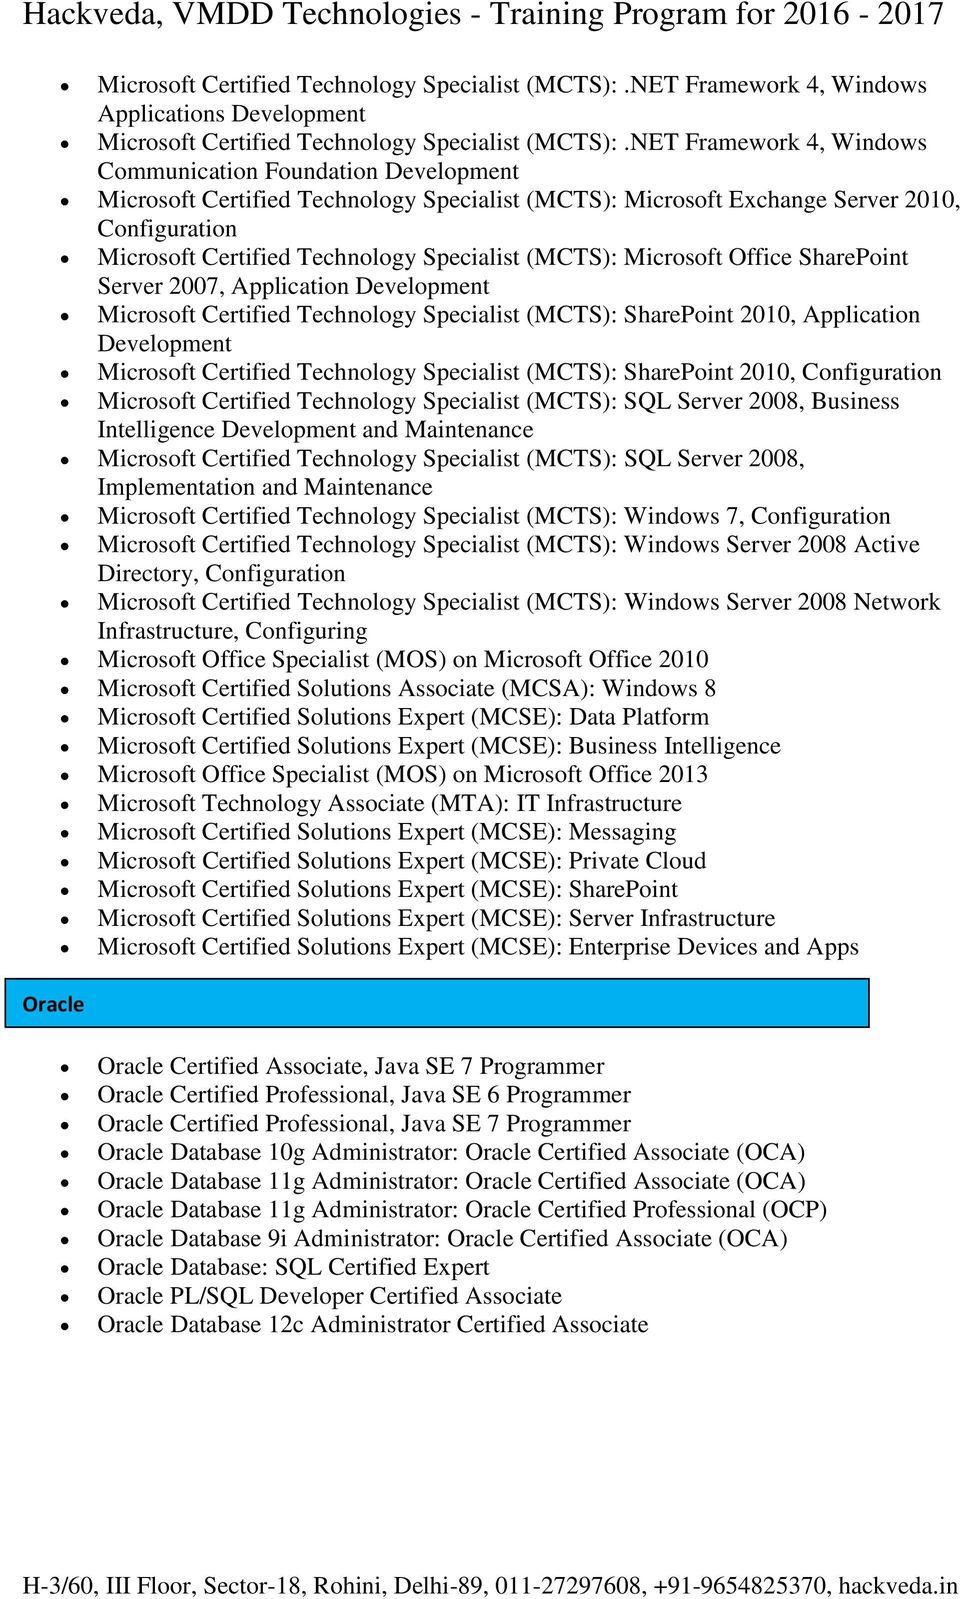 (MCTS): Microsoft Office SharePoint Server 2007, Application Development Microsoft Certified Technology Specialist (MCTS): SharePoint 2010, Application Development Microsoft Certified Technology